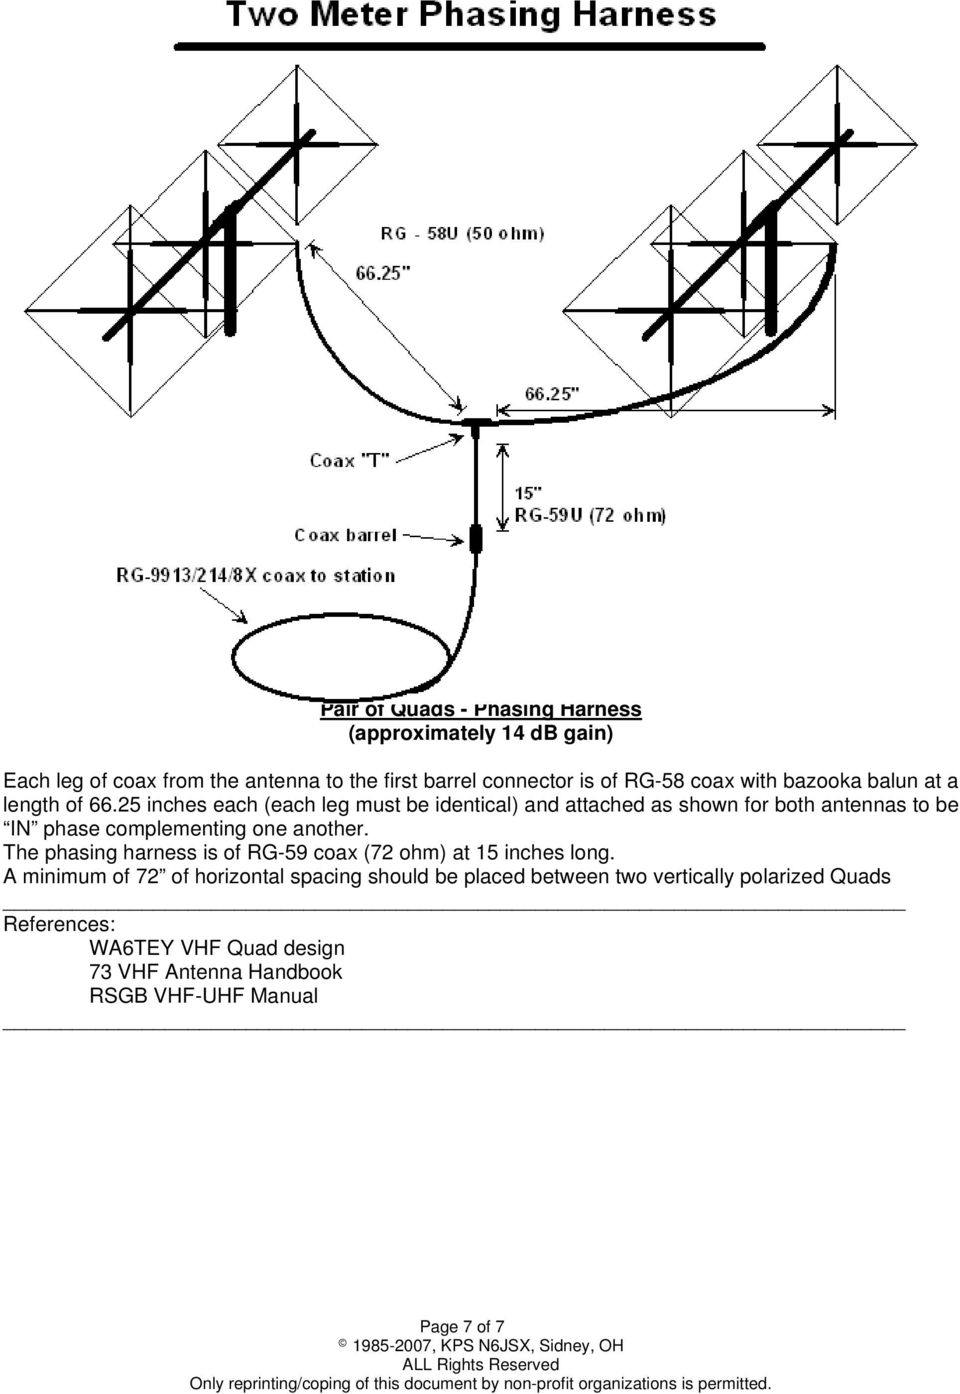 PLEASE - Read this entire booklet and study the diagrams